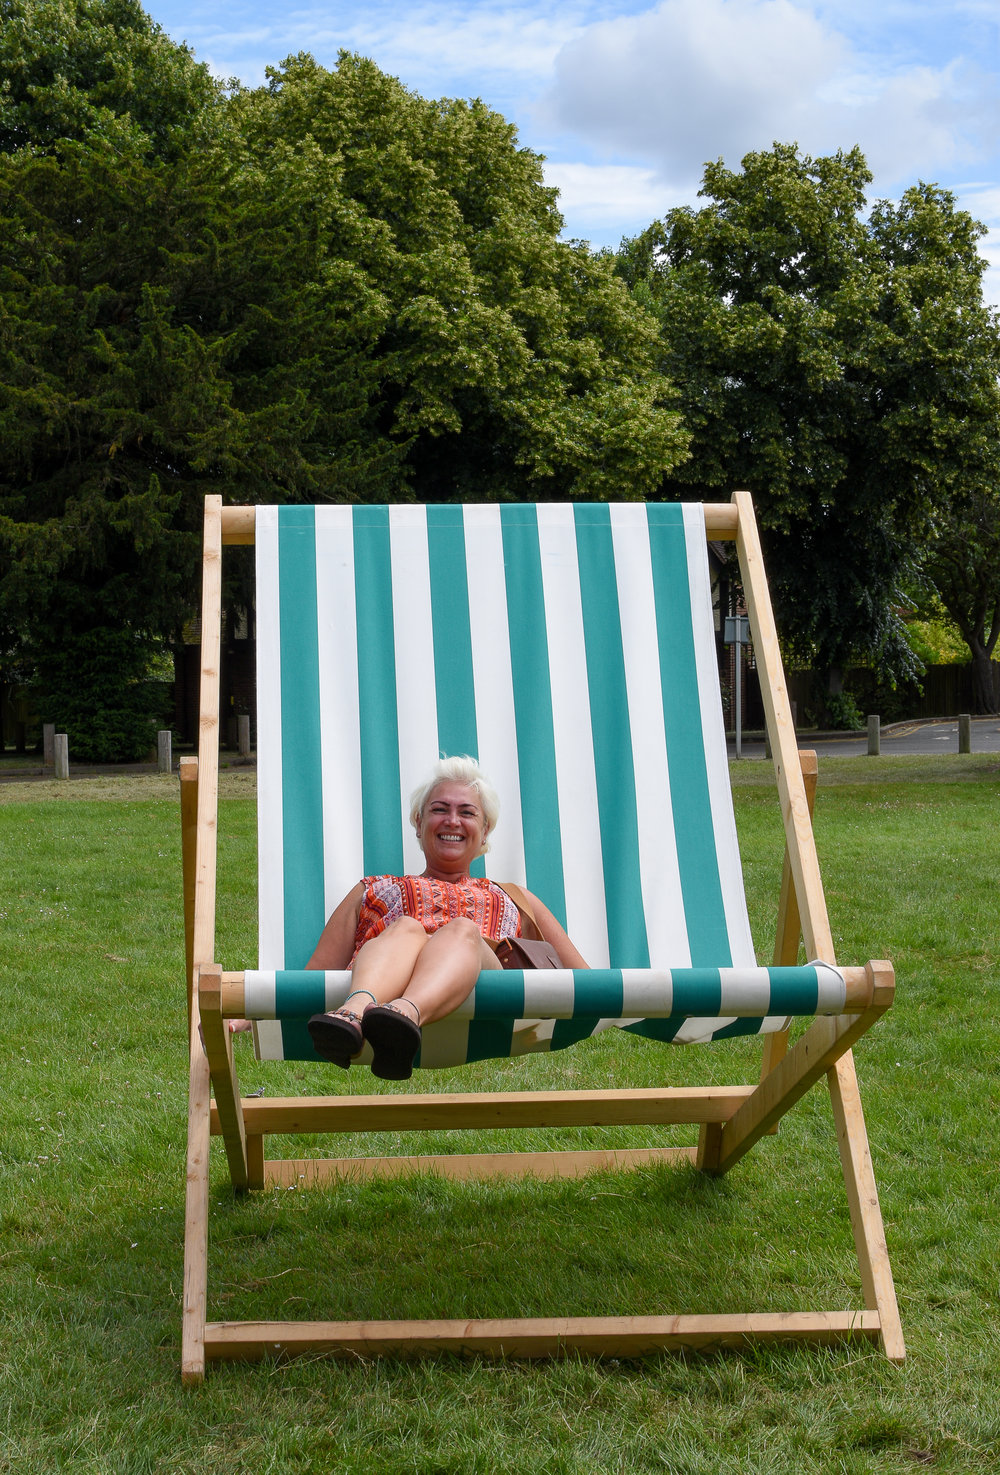 Giant deck chair fun!